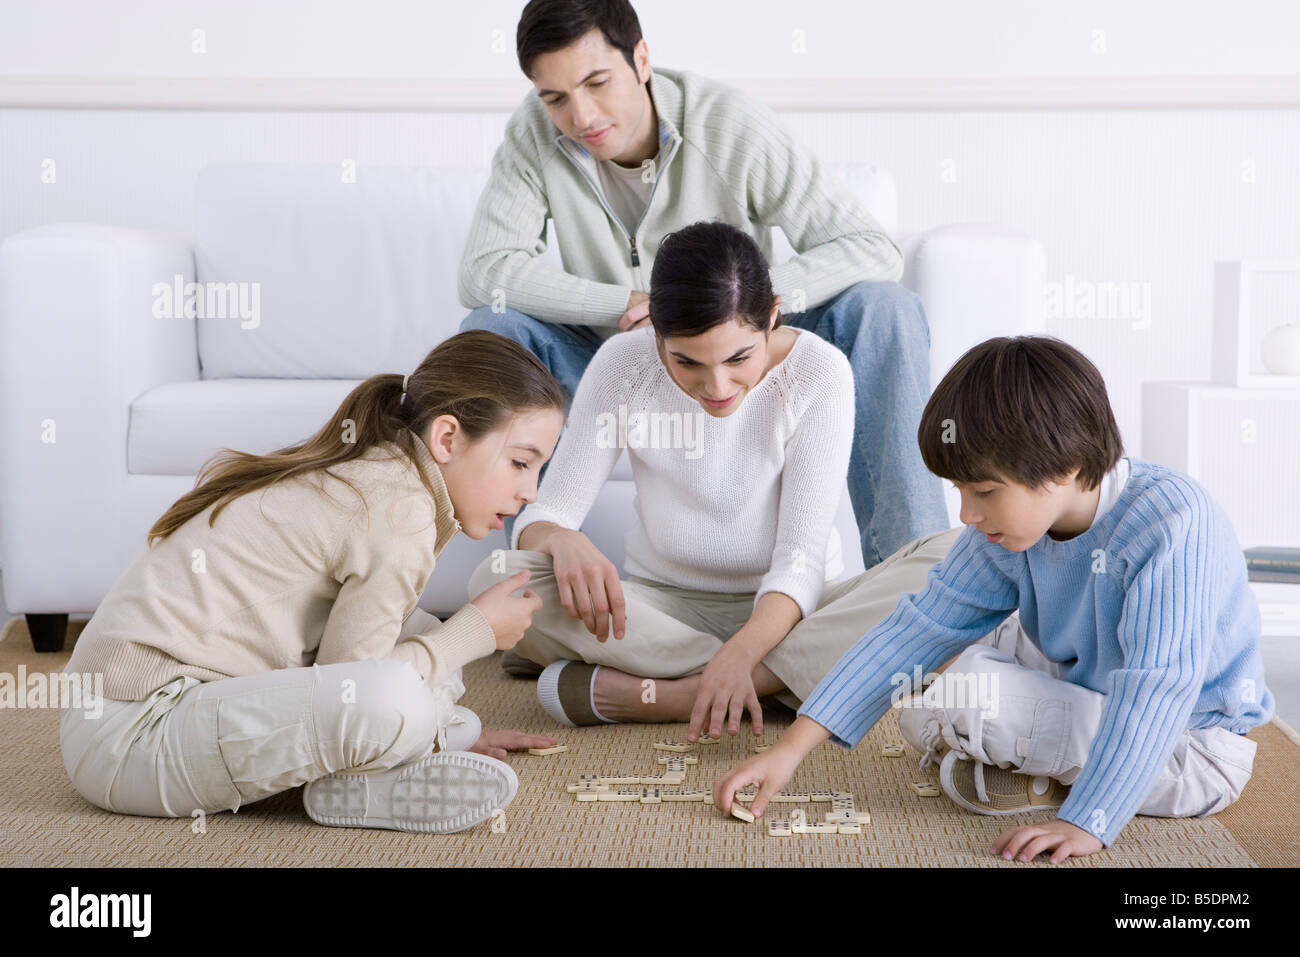 Family spending time together, mother and children playing dominoes, father watching Stock Photo